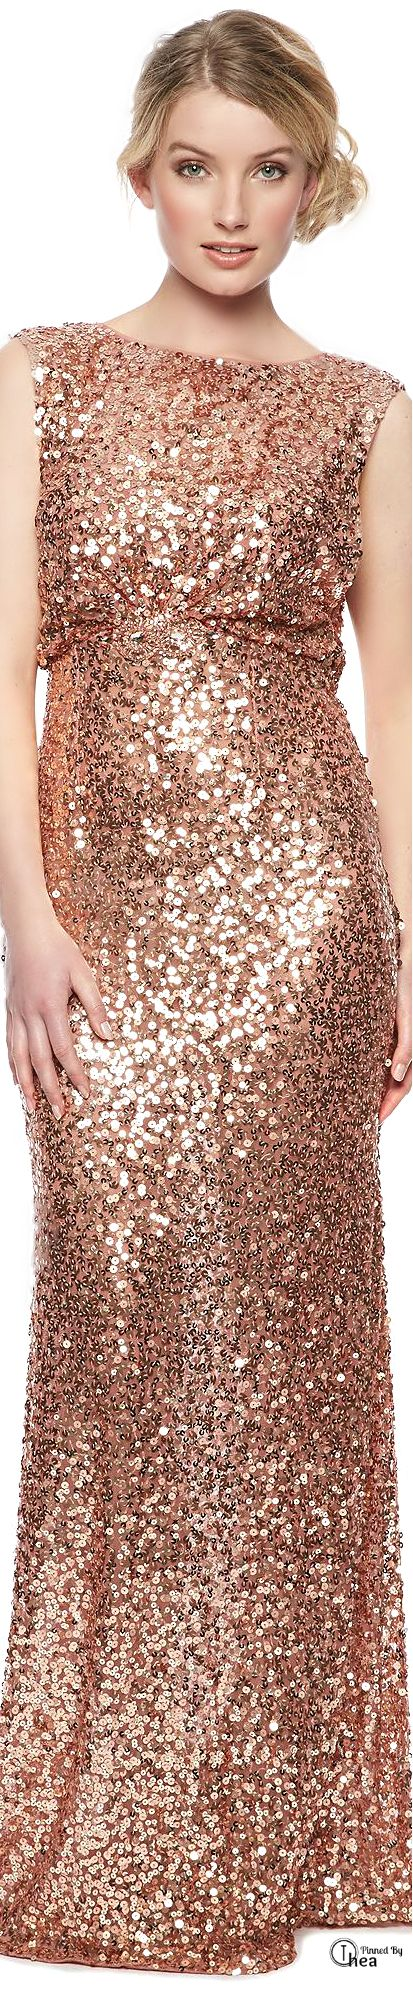 Jenny Packham we have a one shouldered short version of this dress